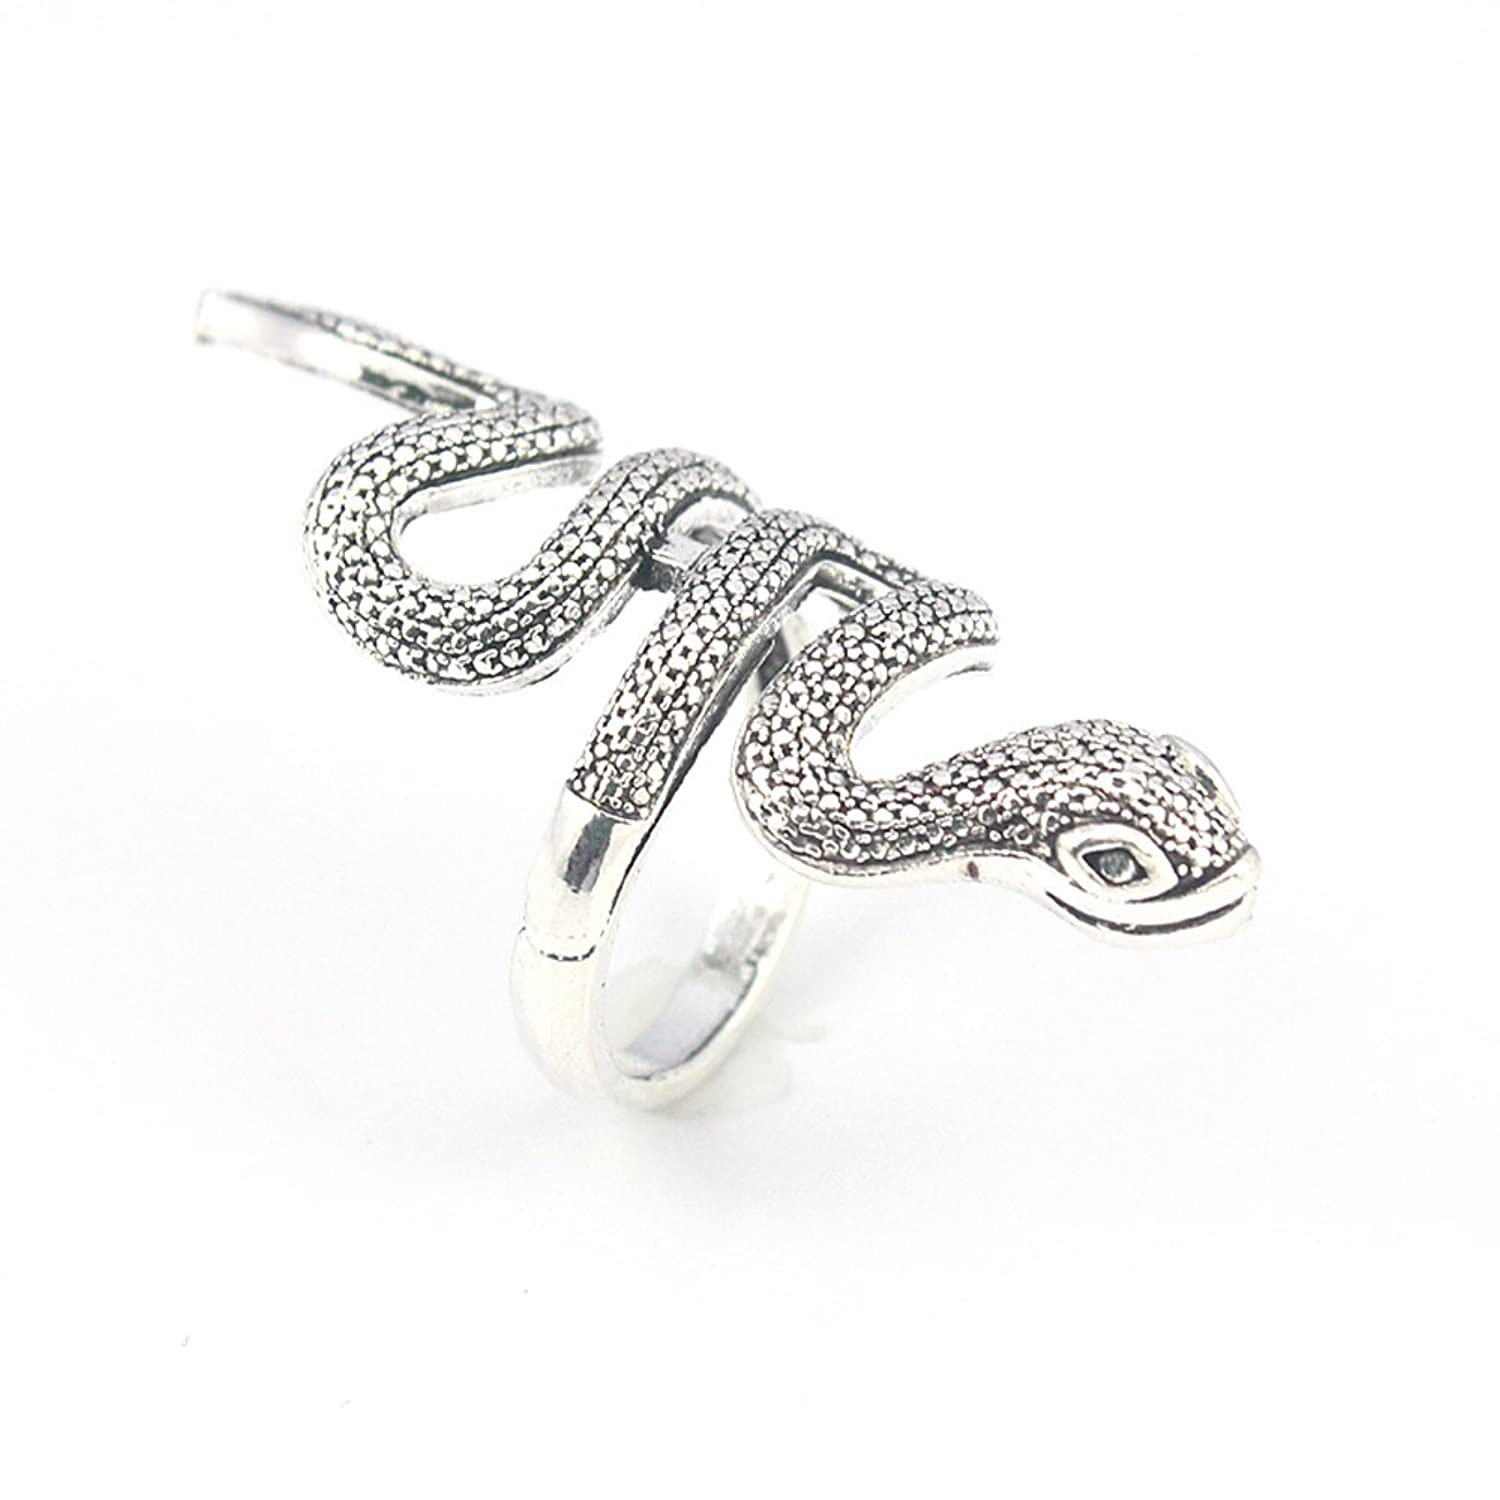 SNAKE PLAIN FASHION JEWELRY .925 SILVER PLATED RING 9 S23311